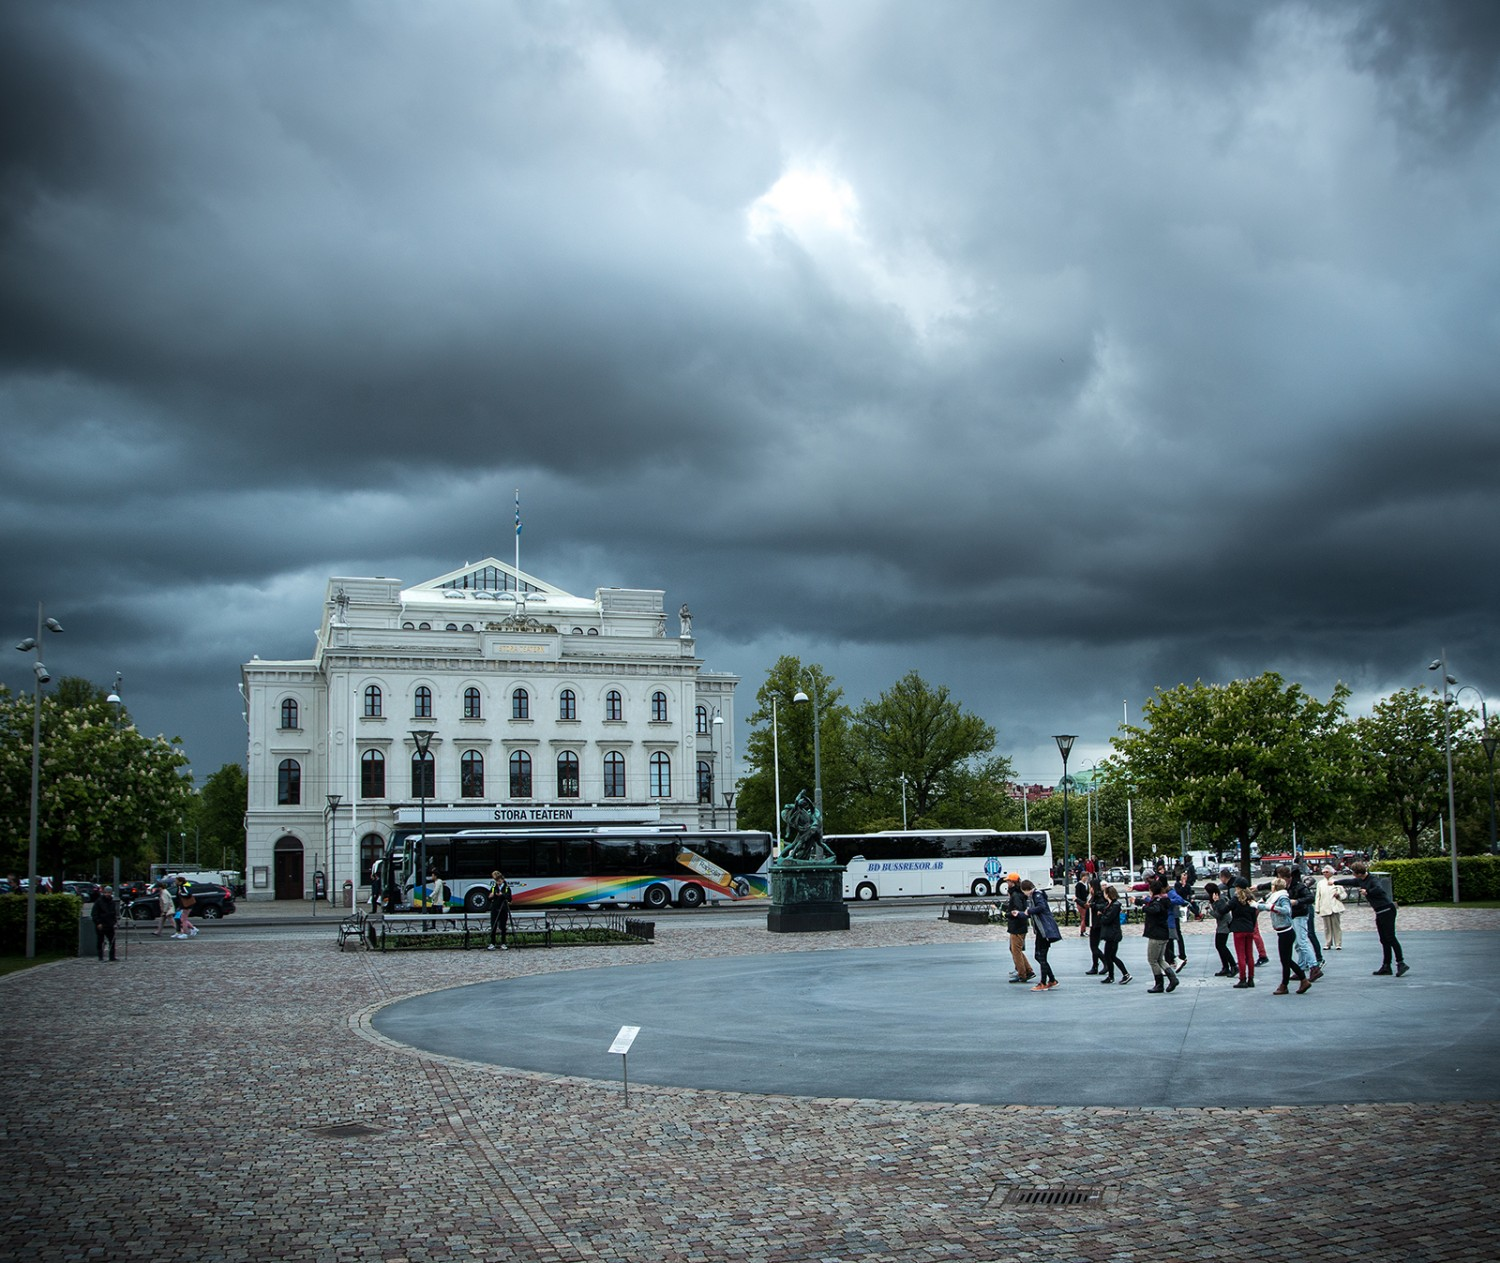 Clouds over Stora Teatern in Malmö. In the corner av the picture a group of people are making movements with their arms.